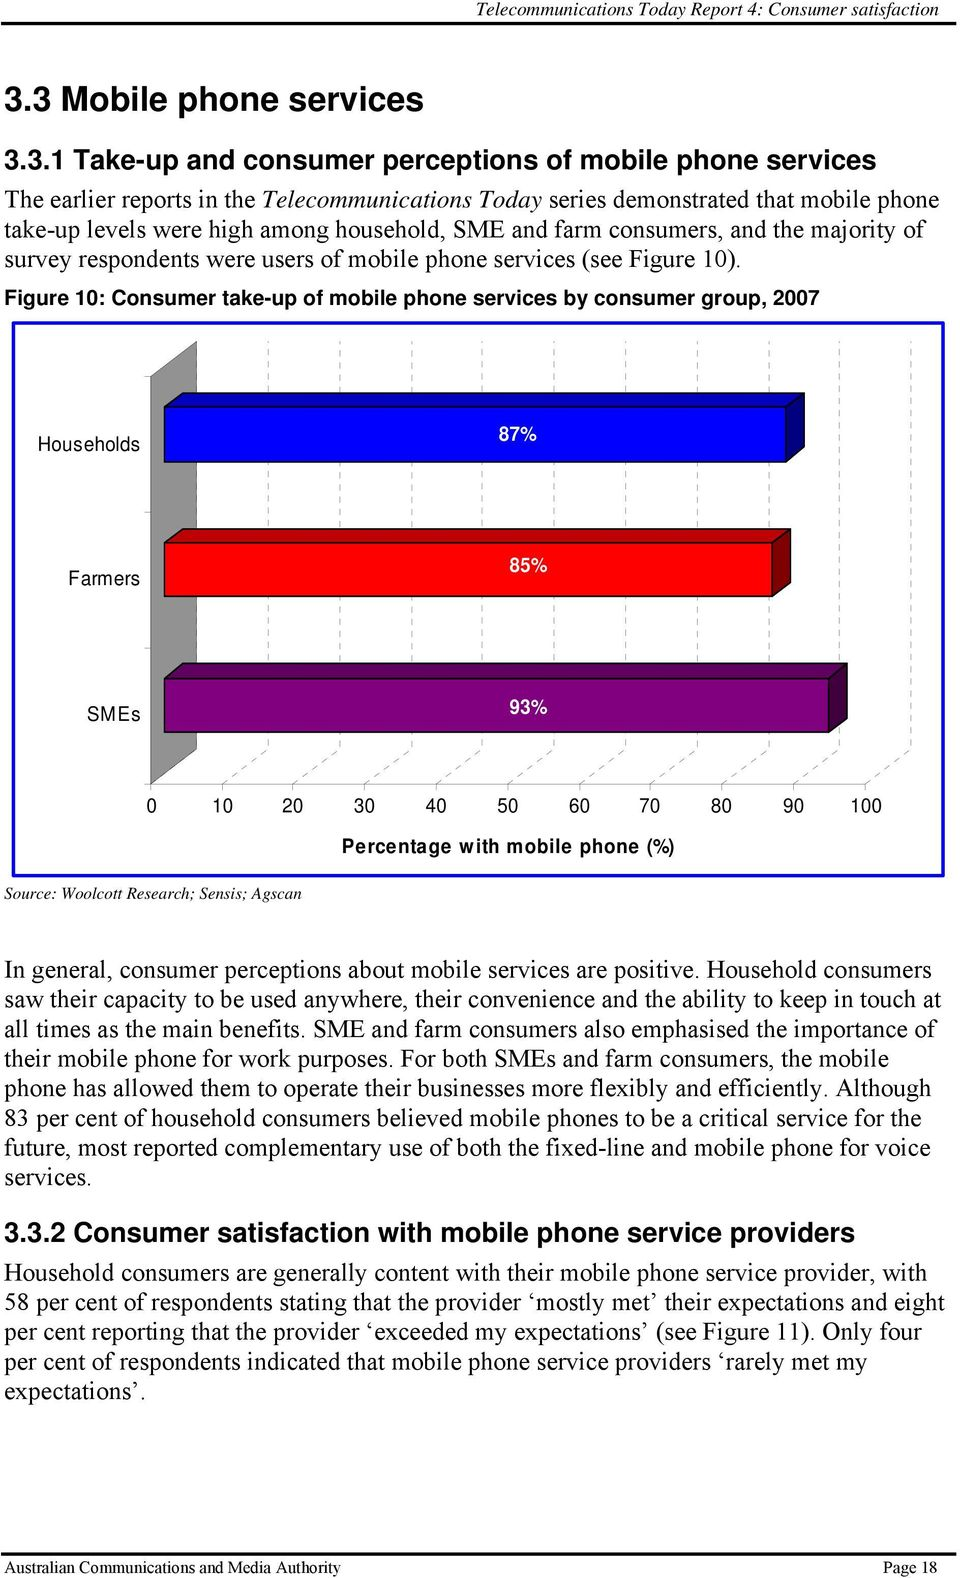 Figure 10: Consumer take-up of mobile phone services by consumer group, 2007 Households 87% Farmers 85% SMEs 93% 0 10 20 30 40 50 60 70 80 90 100 Percentage with mobile phone (%) Source: Woolcott